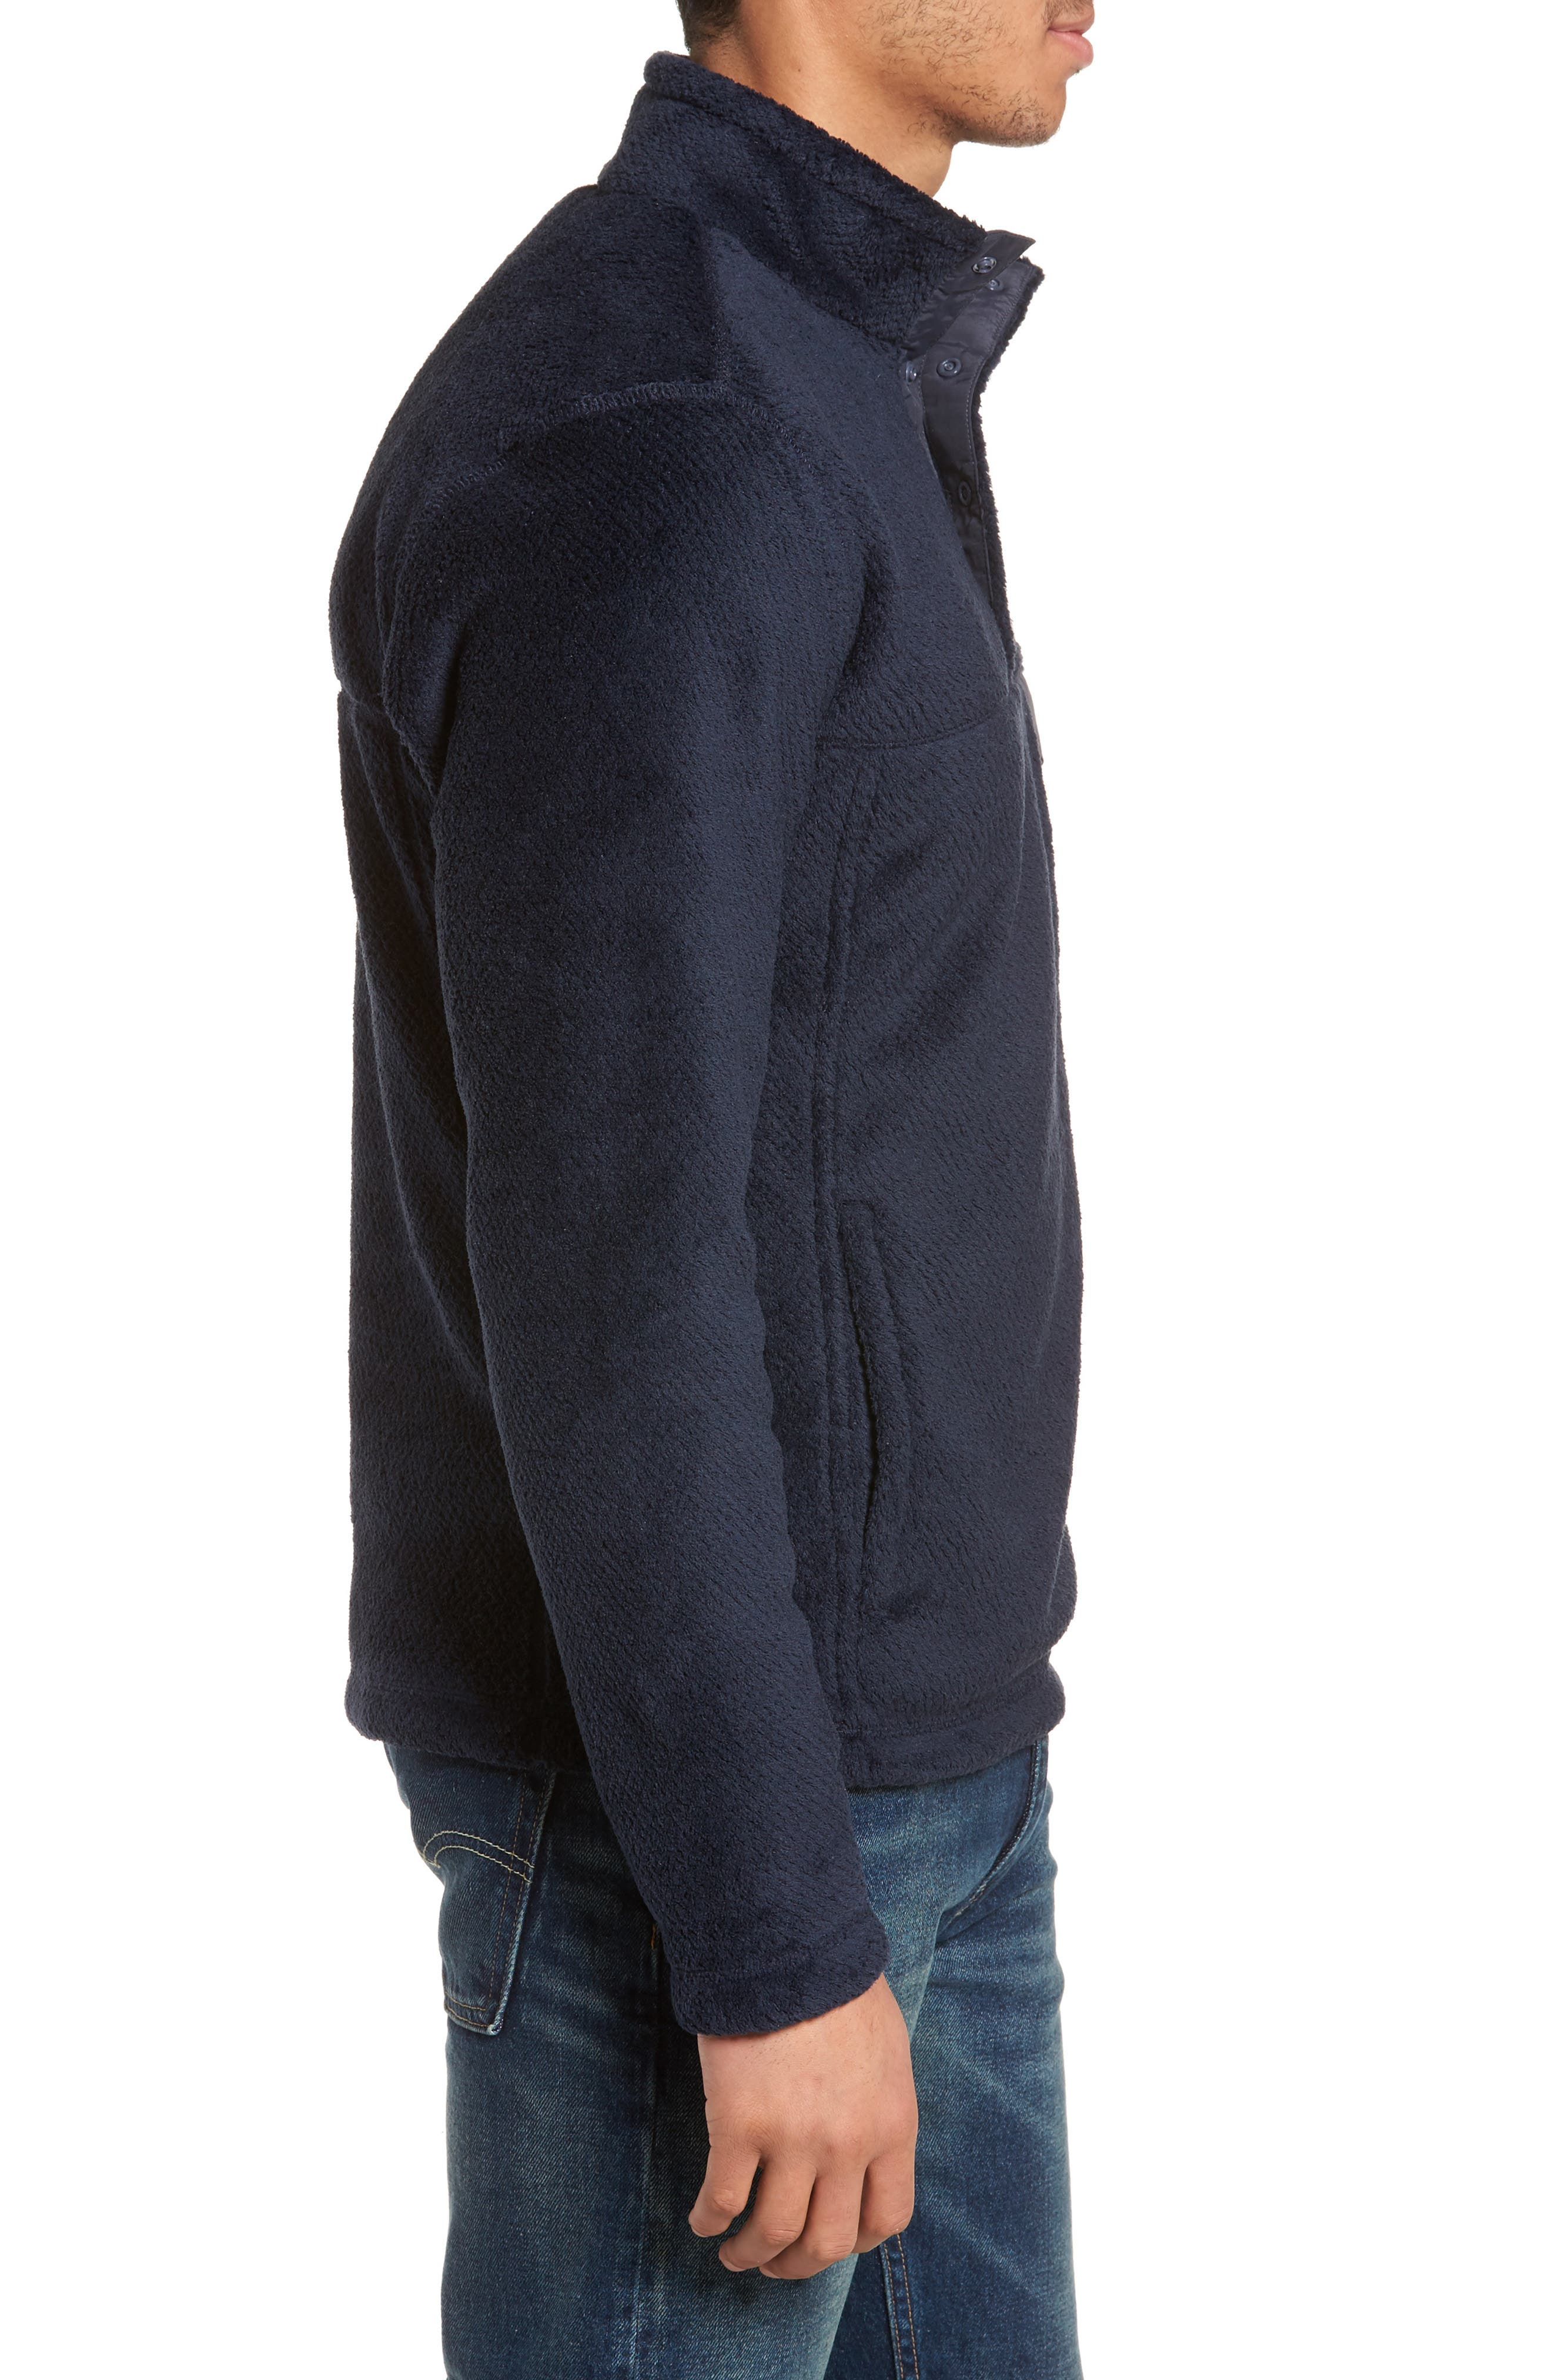 Re-Tool Snap-T<sup>®</sup> Pullover,                             Alternate thumbnail 3, color,                             Navy Blue X-Dye